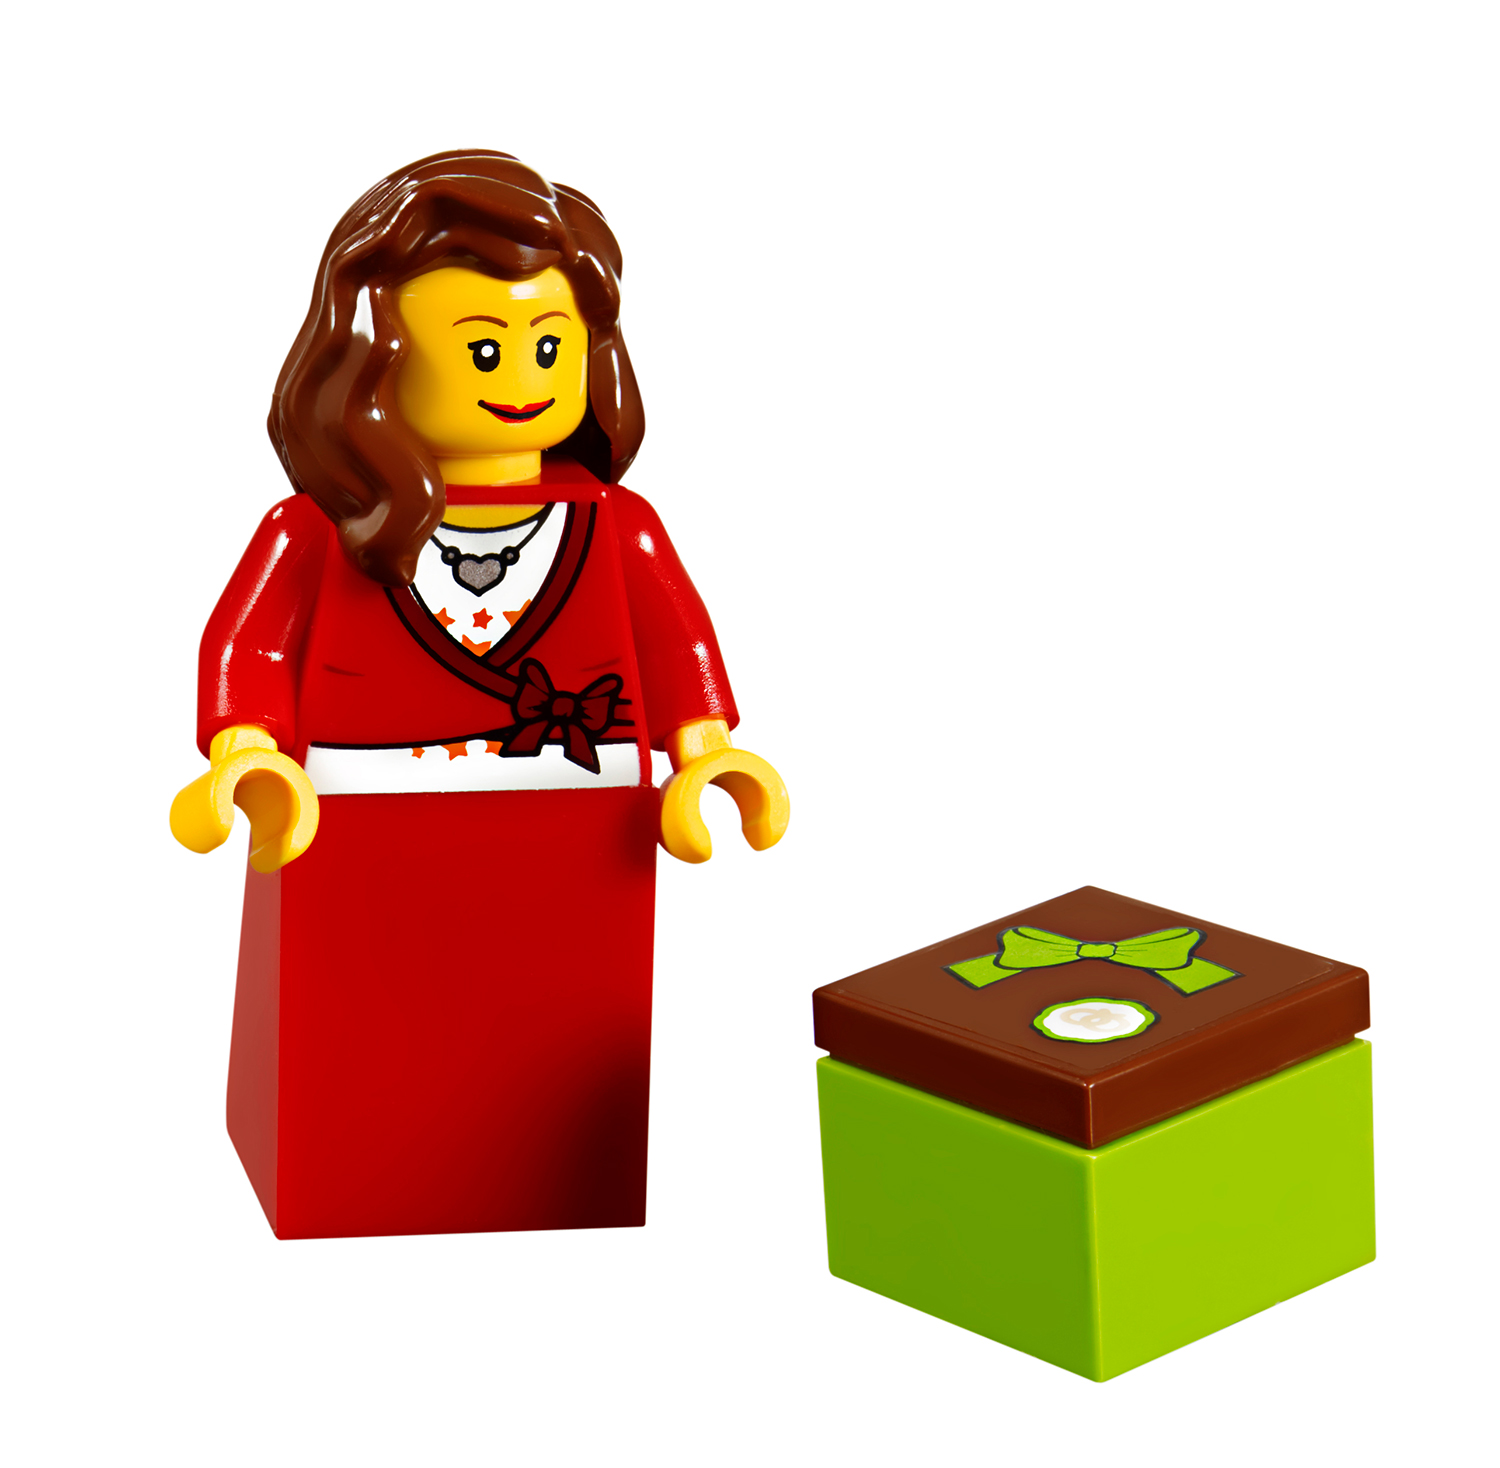 o_10216_minifigure_2_hr.jpg